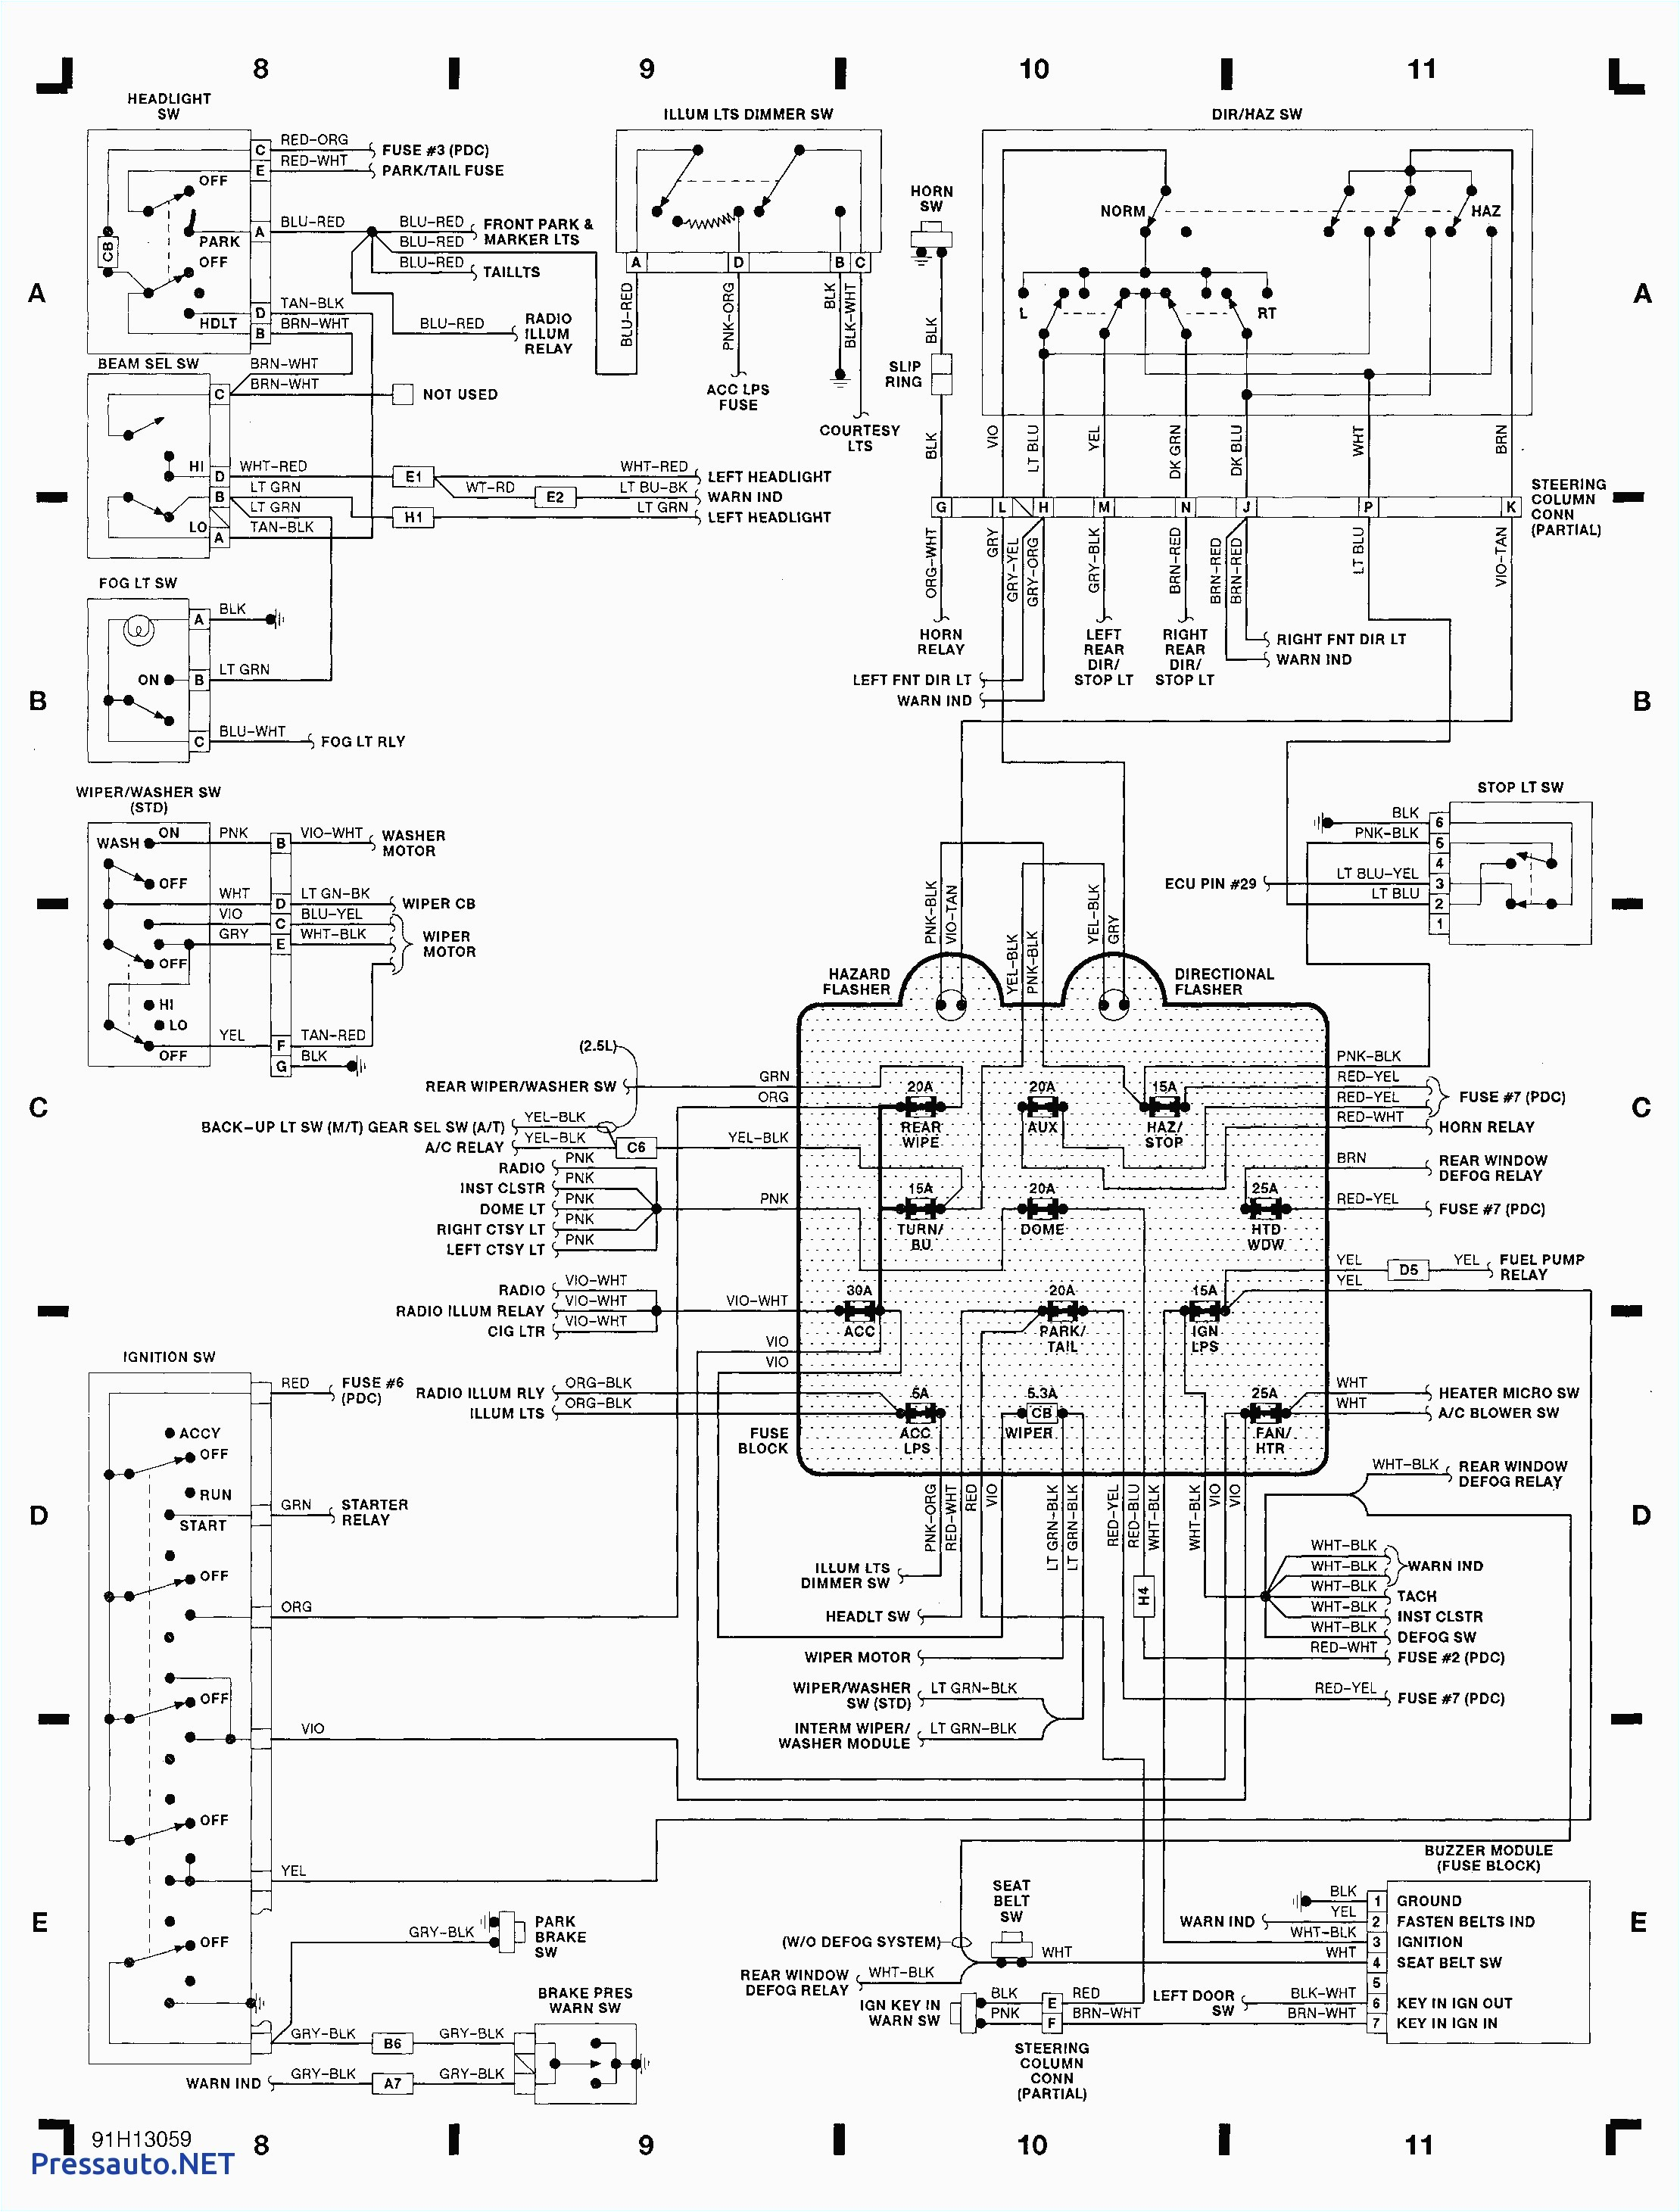 1992 jeep wrangler wiring diagram at for 2012 on 2012 jeep wrangler wiring diagram jpg